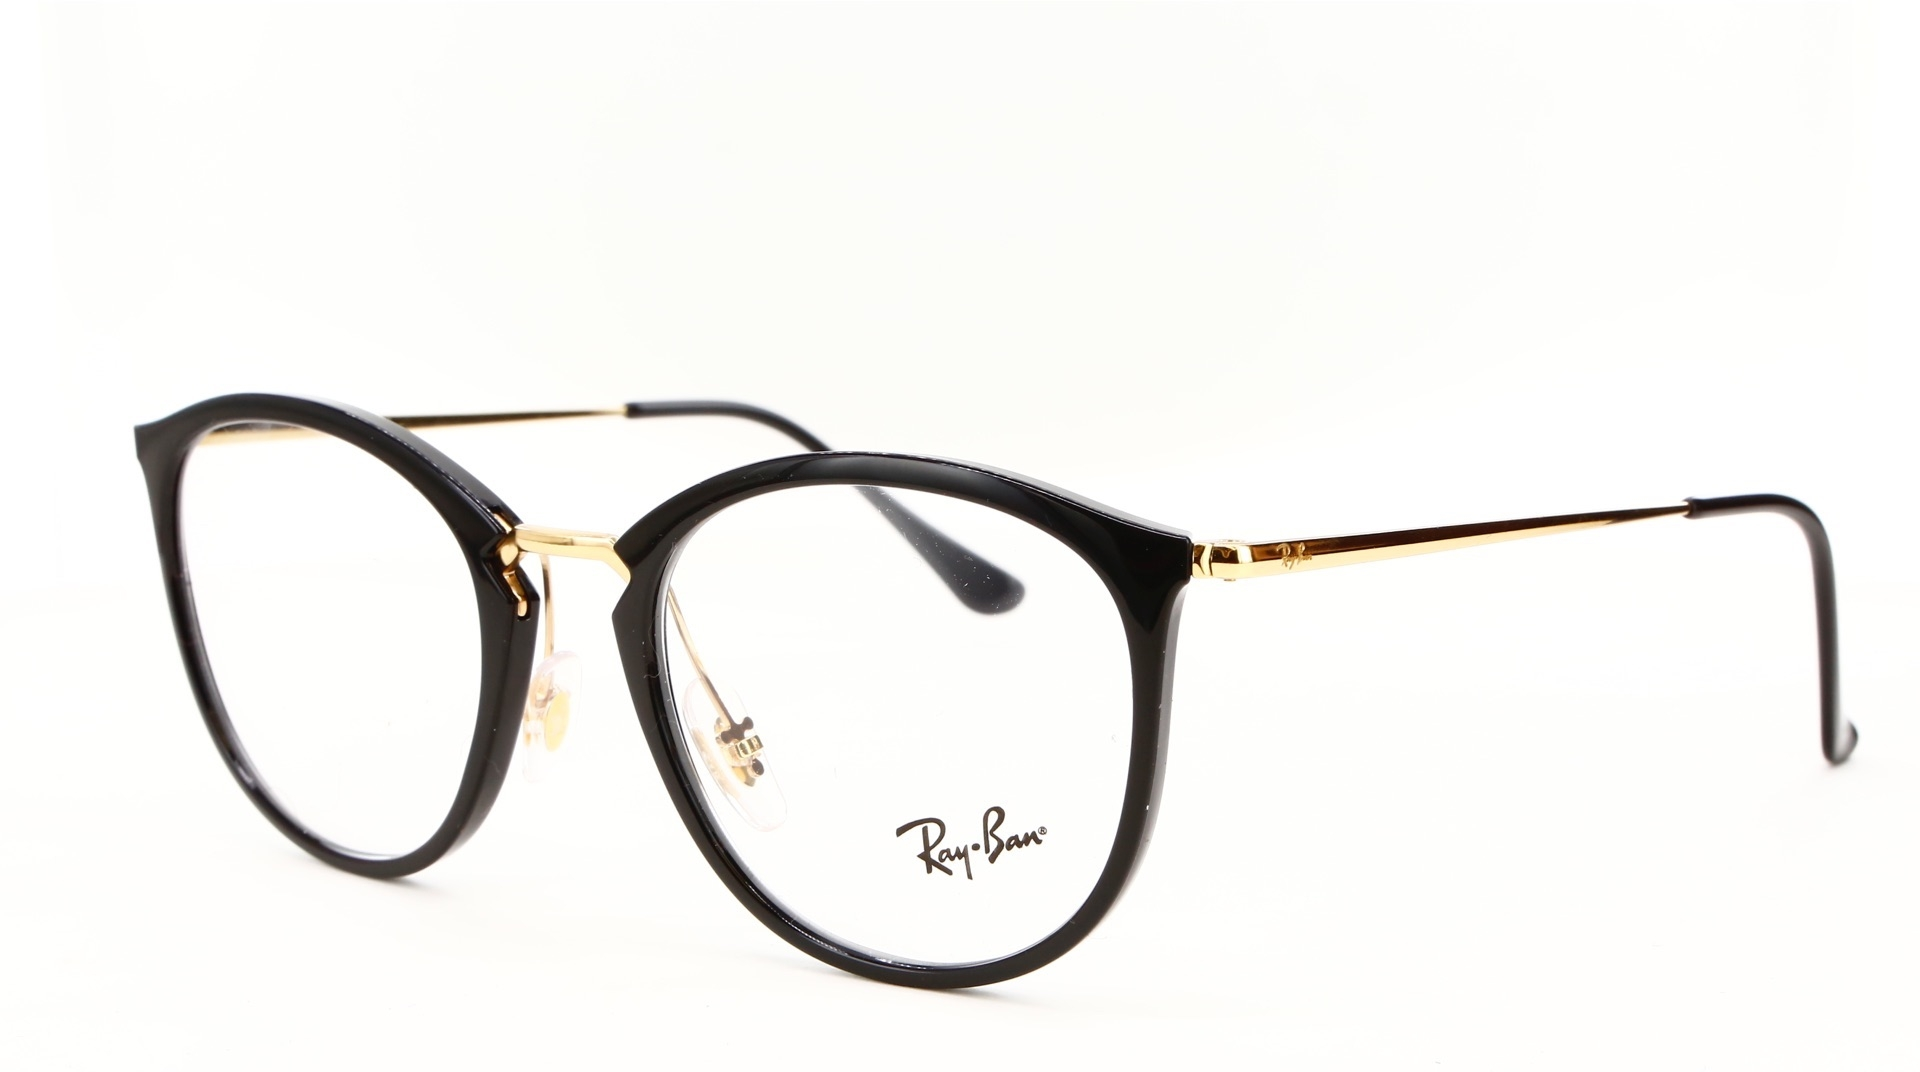 Ray-Ban - ref: 78760